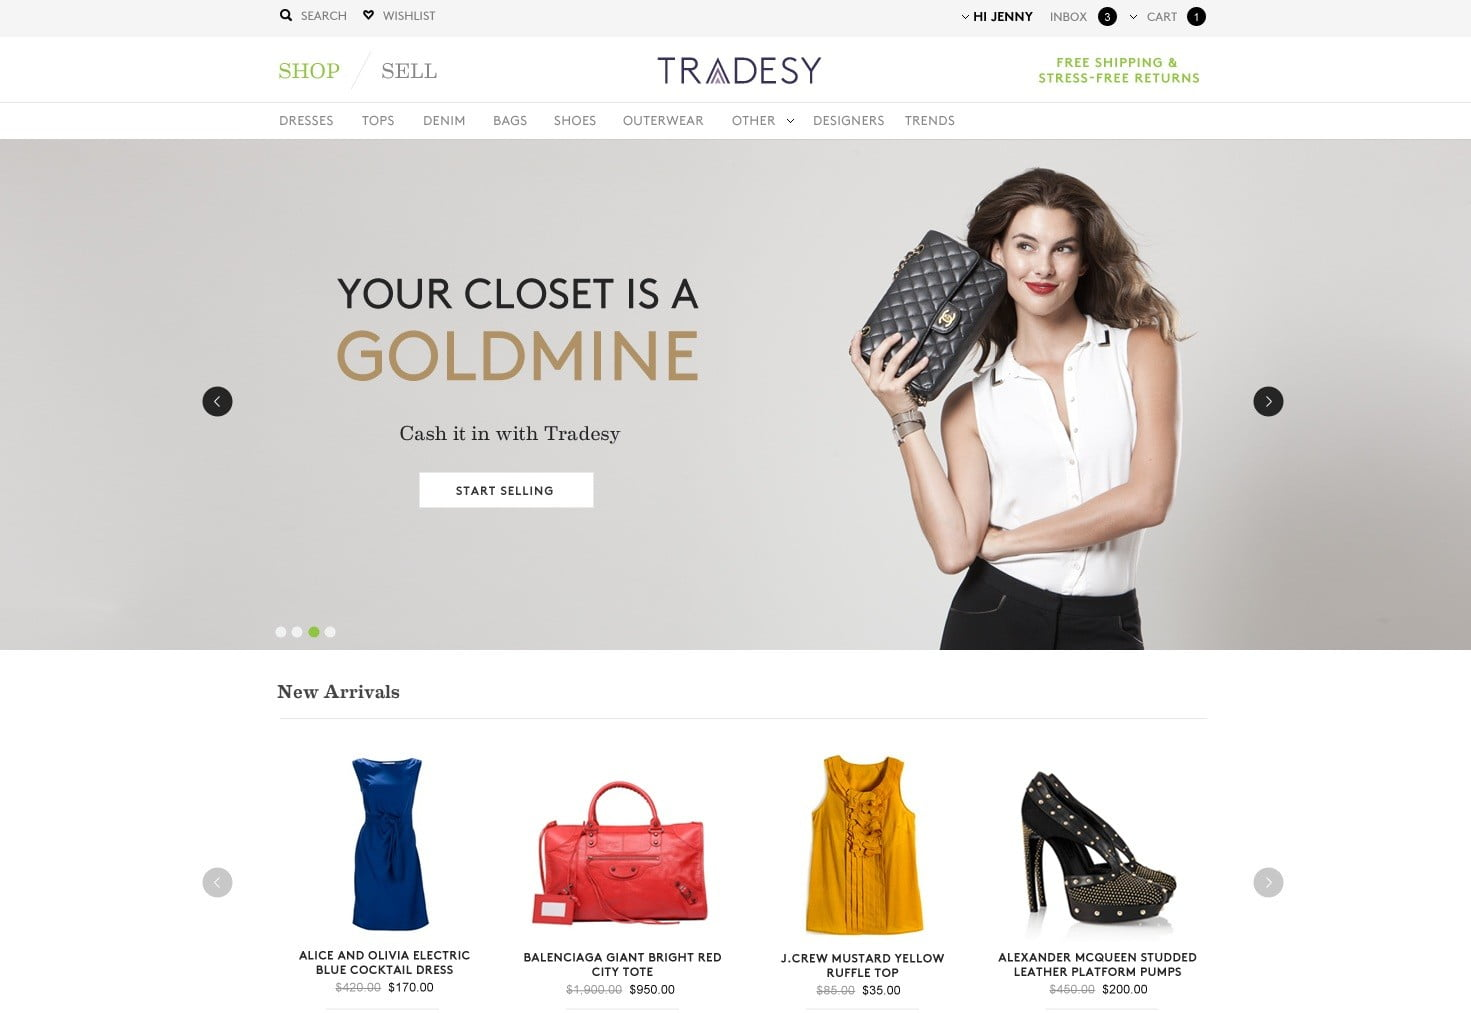 df9706efcd23 Tradesy, a second market for authentic designer clothes, guaranteed |  Digital Trends